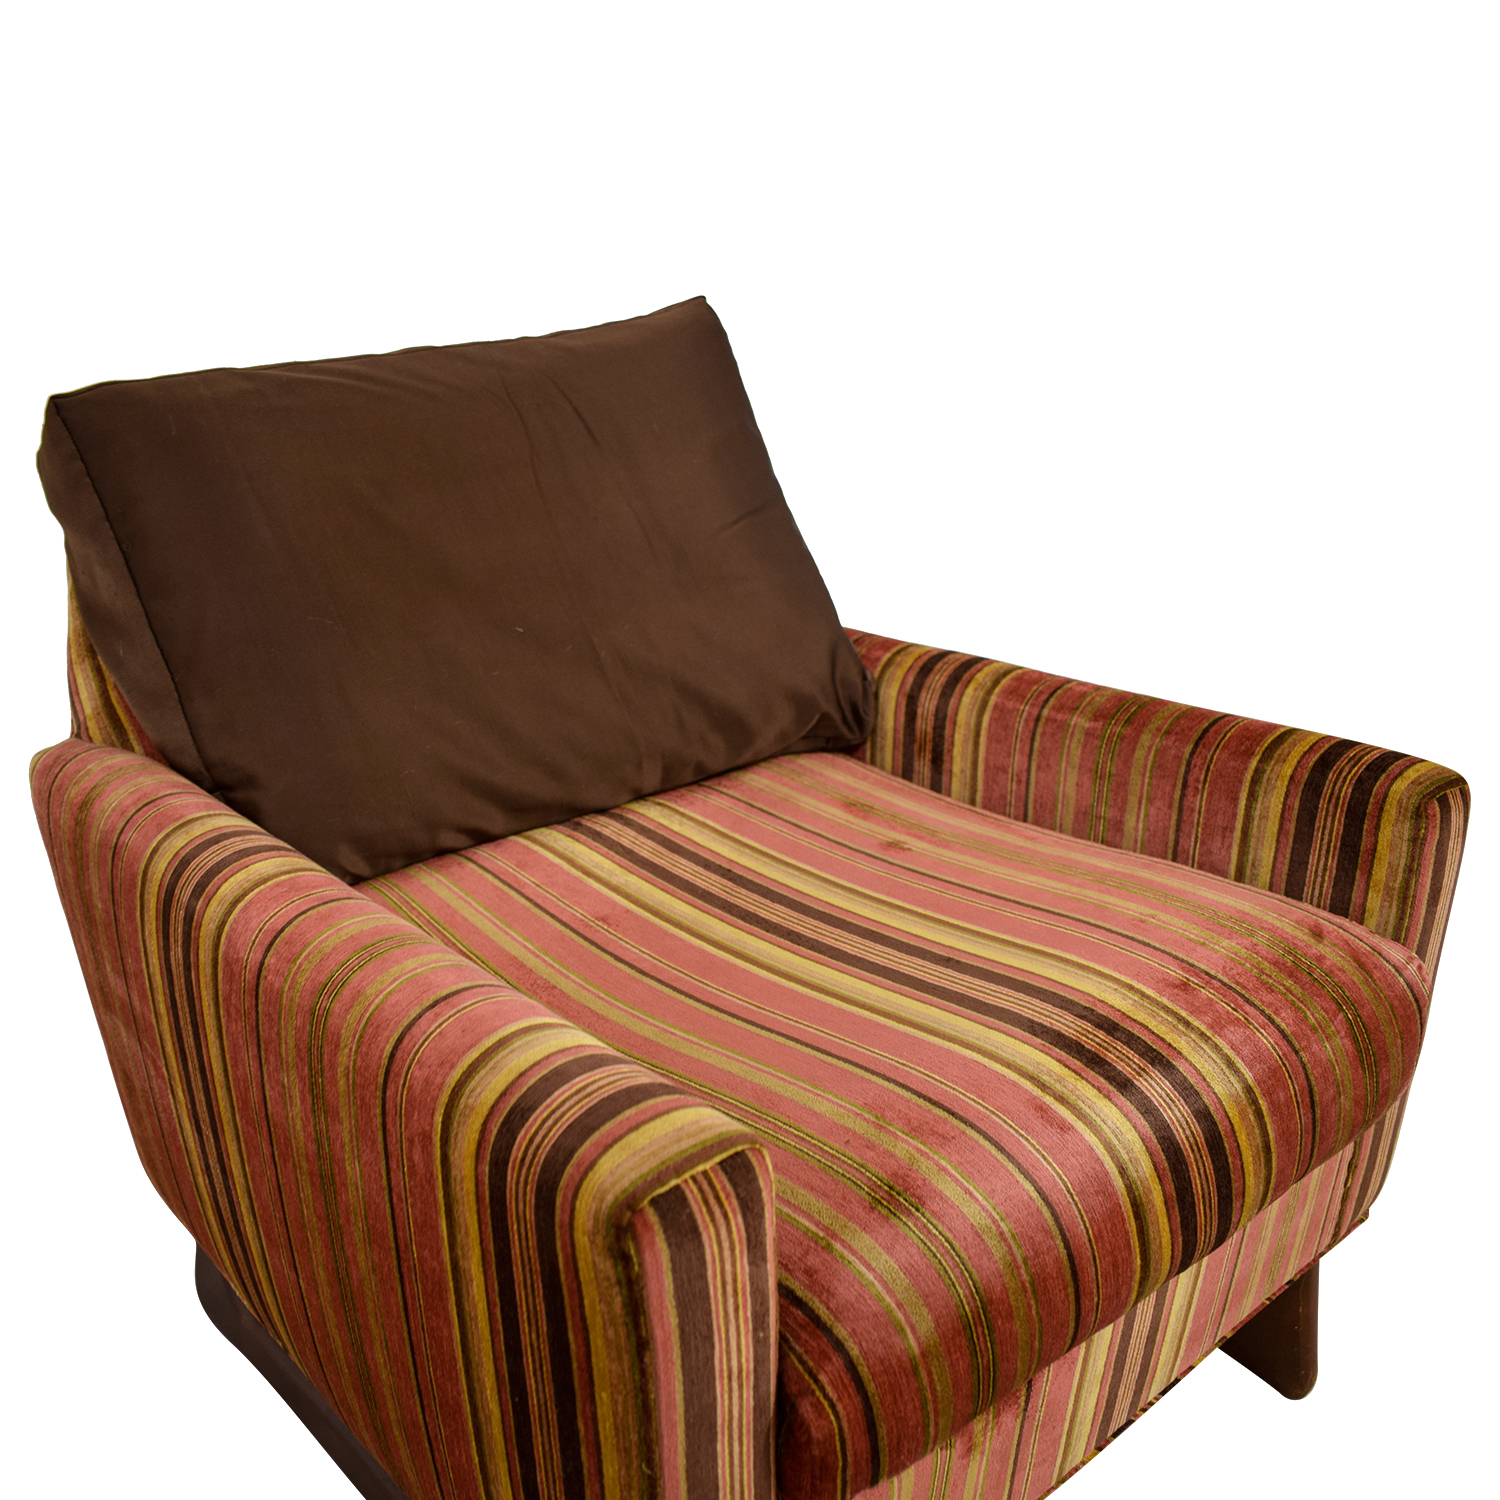 Sensational 89 Off Adrian Pearsall Adrian Pearsall Red And Yellow Striped Accent Chair Chairs Short Links Chair Design For Home Short Linksinfo